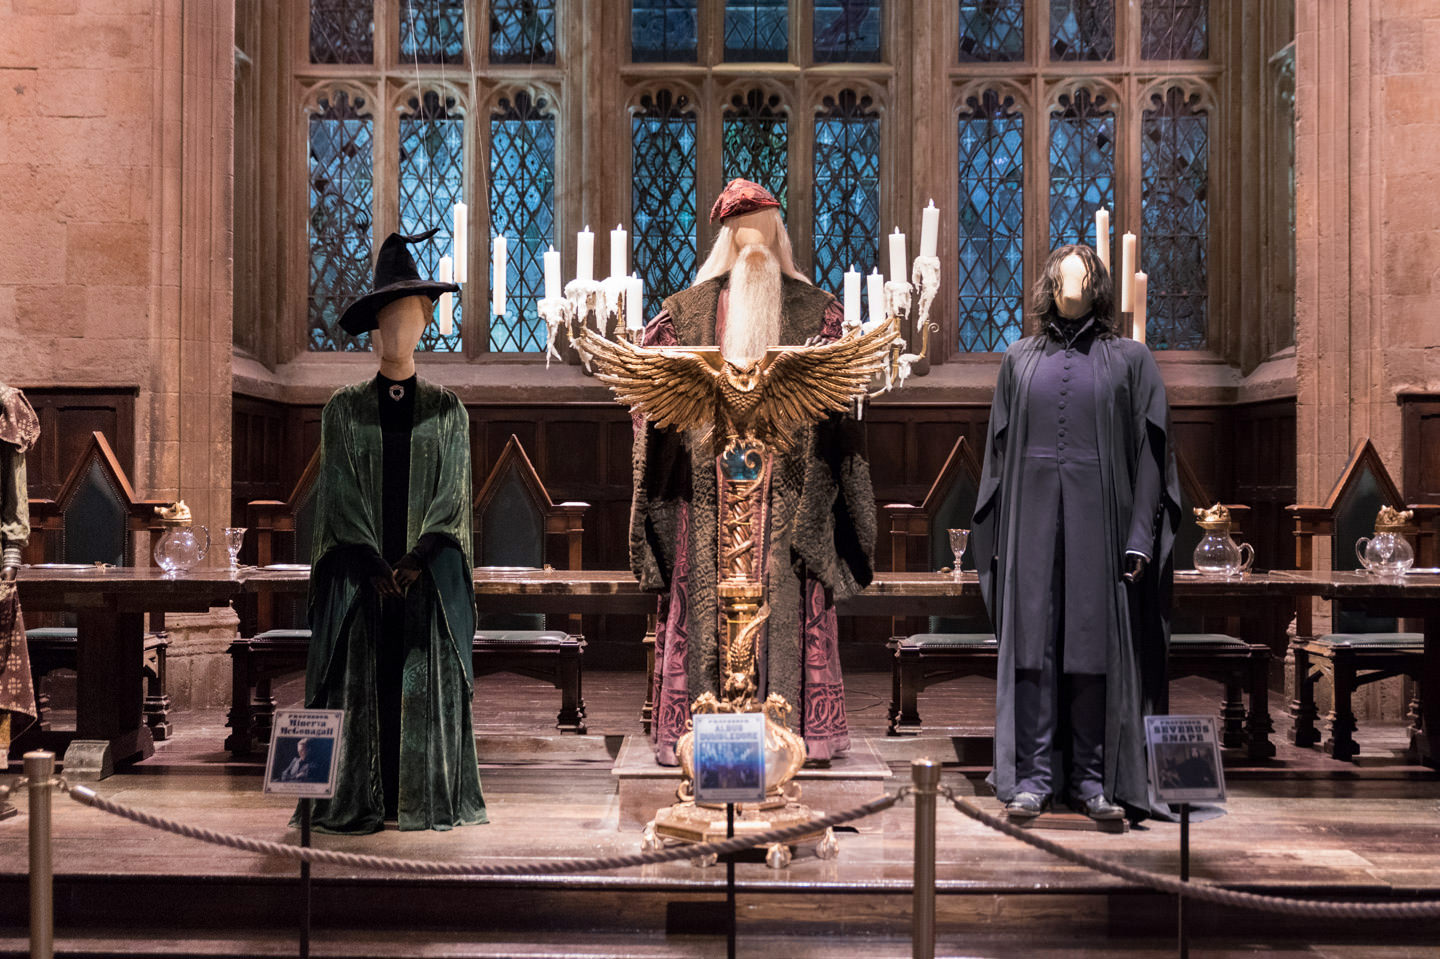 Blog-Mode-And-The-City-Lifestyle-Visite-Studios-Harry-Potter-Londres-4